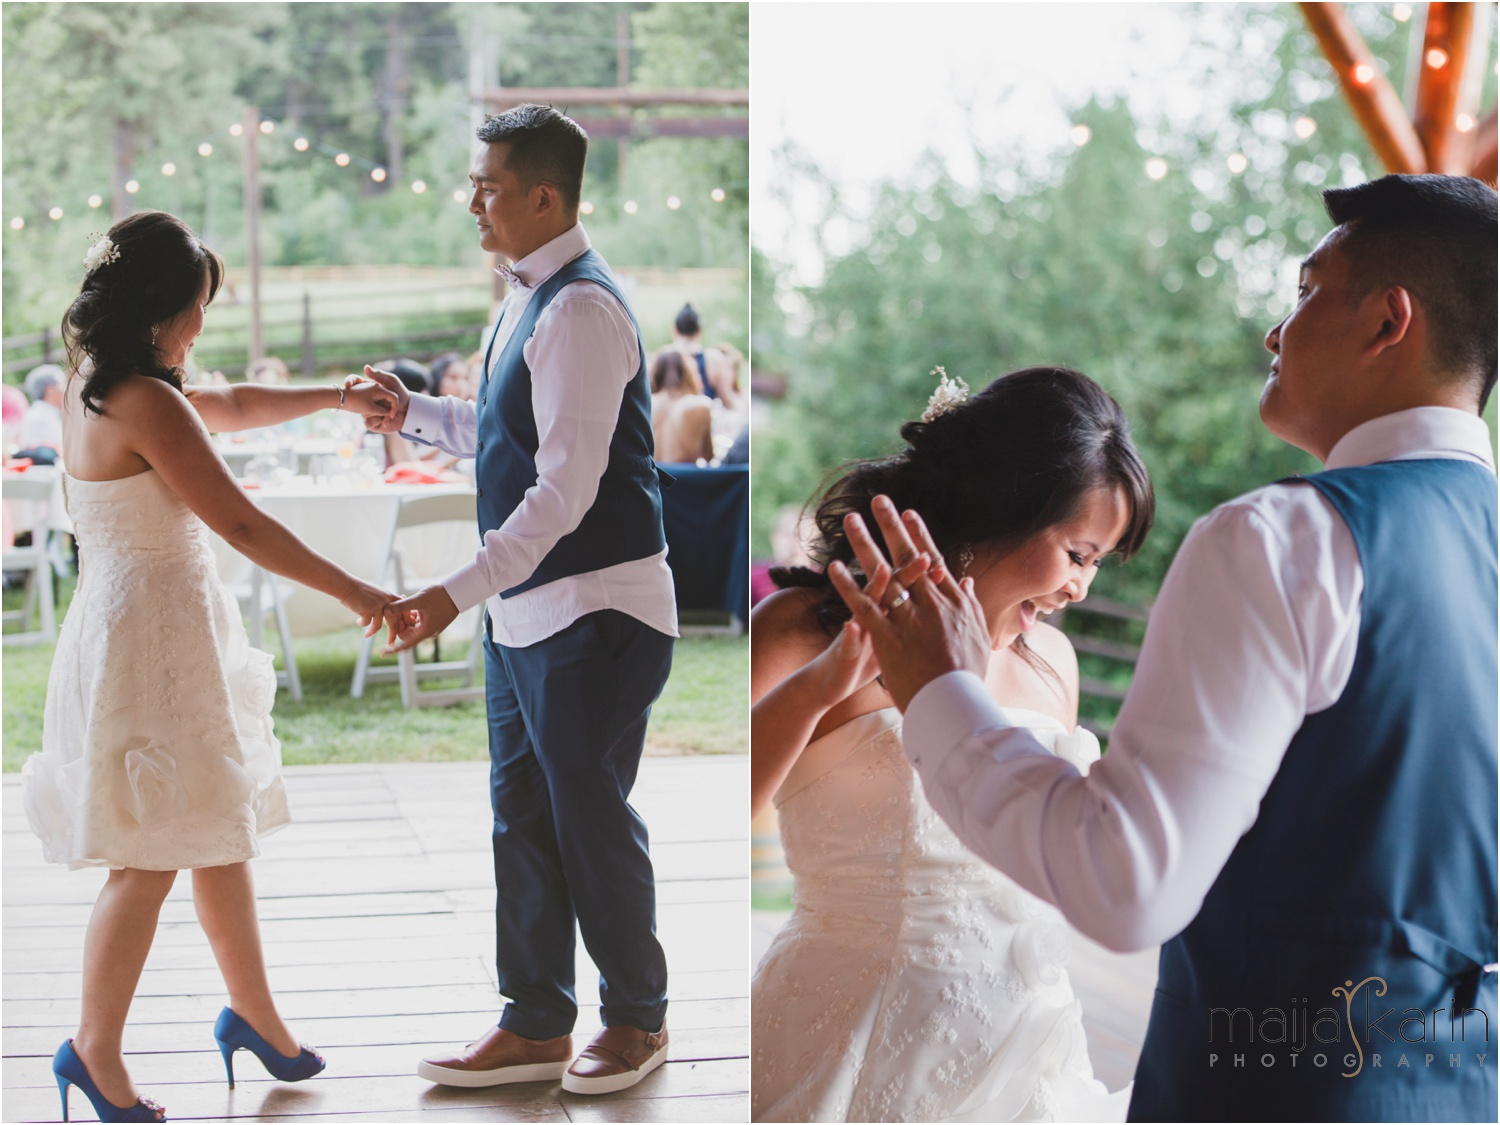 Mountain-Springs-Lodge-Leavenworth-Washington-Wedding-Photographer-Majiin-Karin-Photography_67.jpg